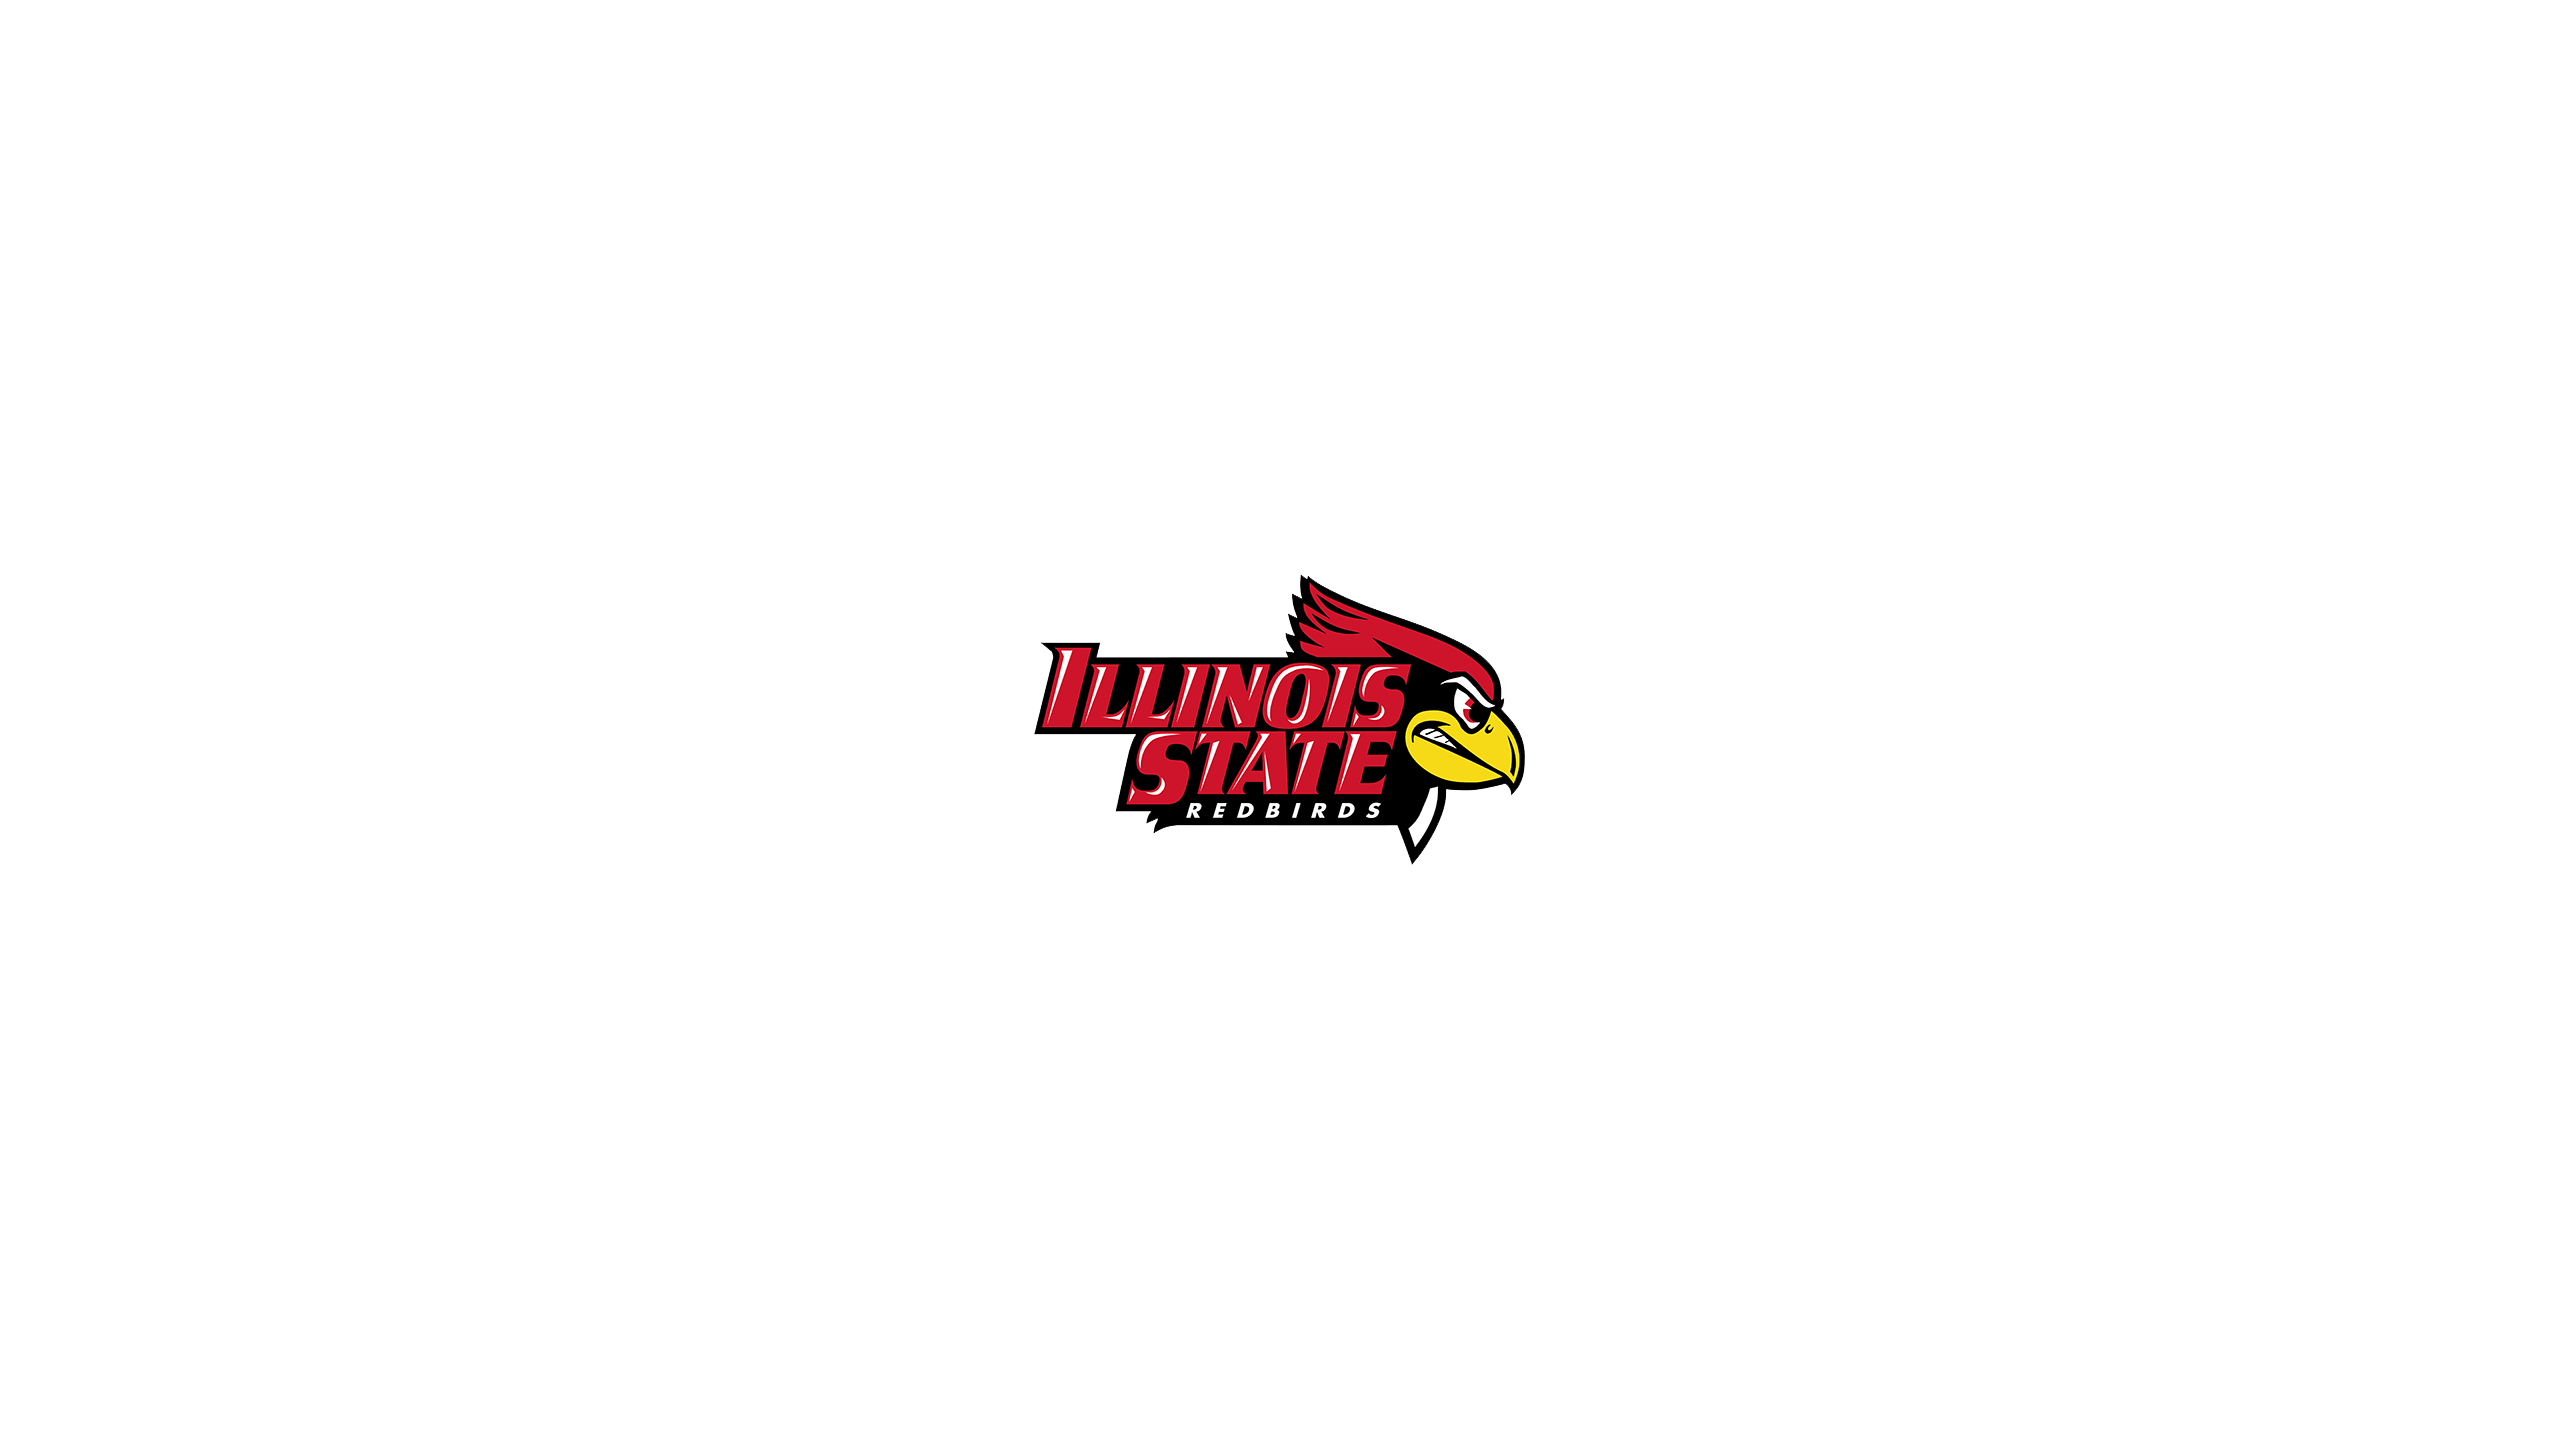 Illinois State University Redbirds